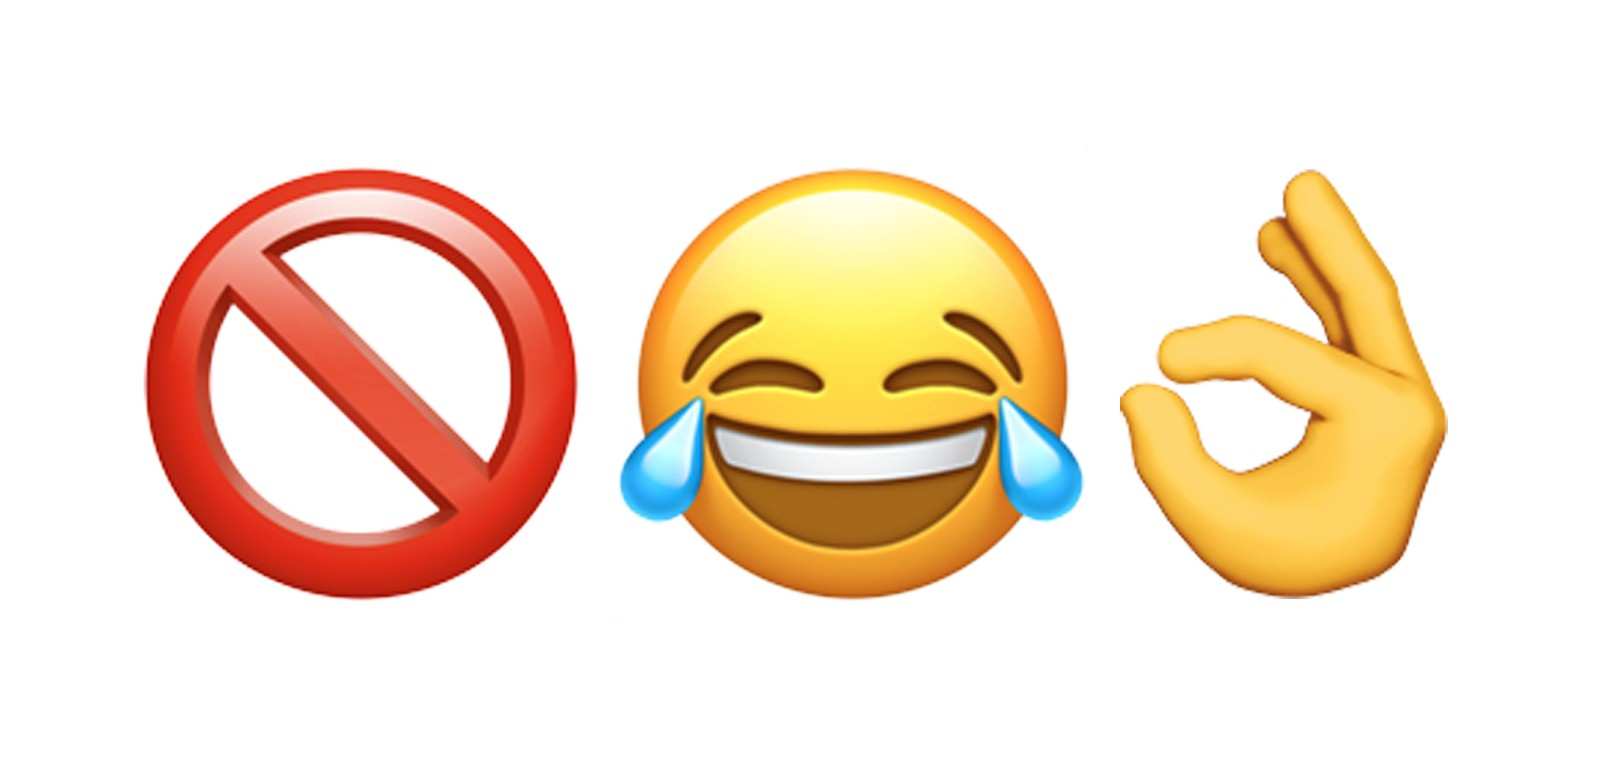 How To Use Emoji At Work Without Looking Stupid